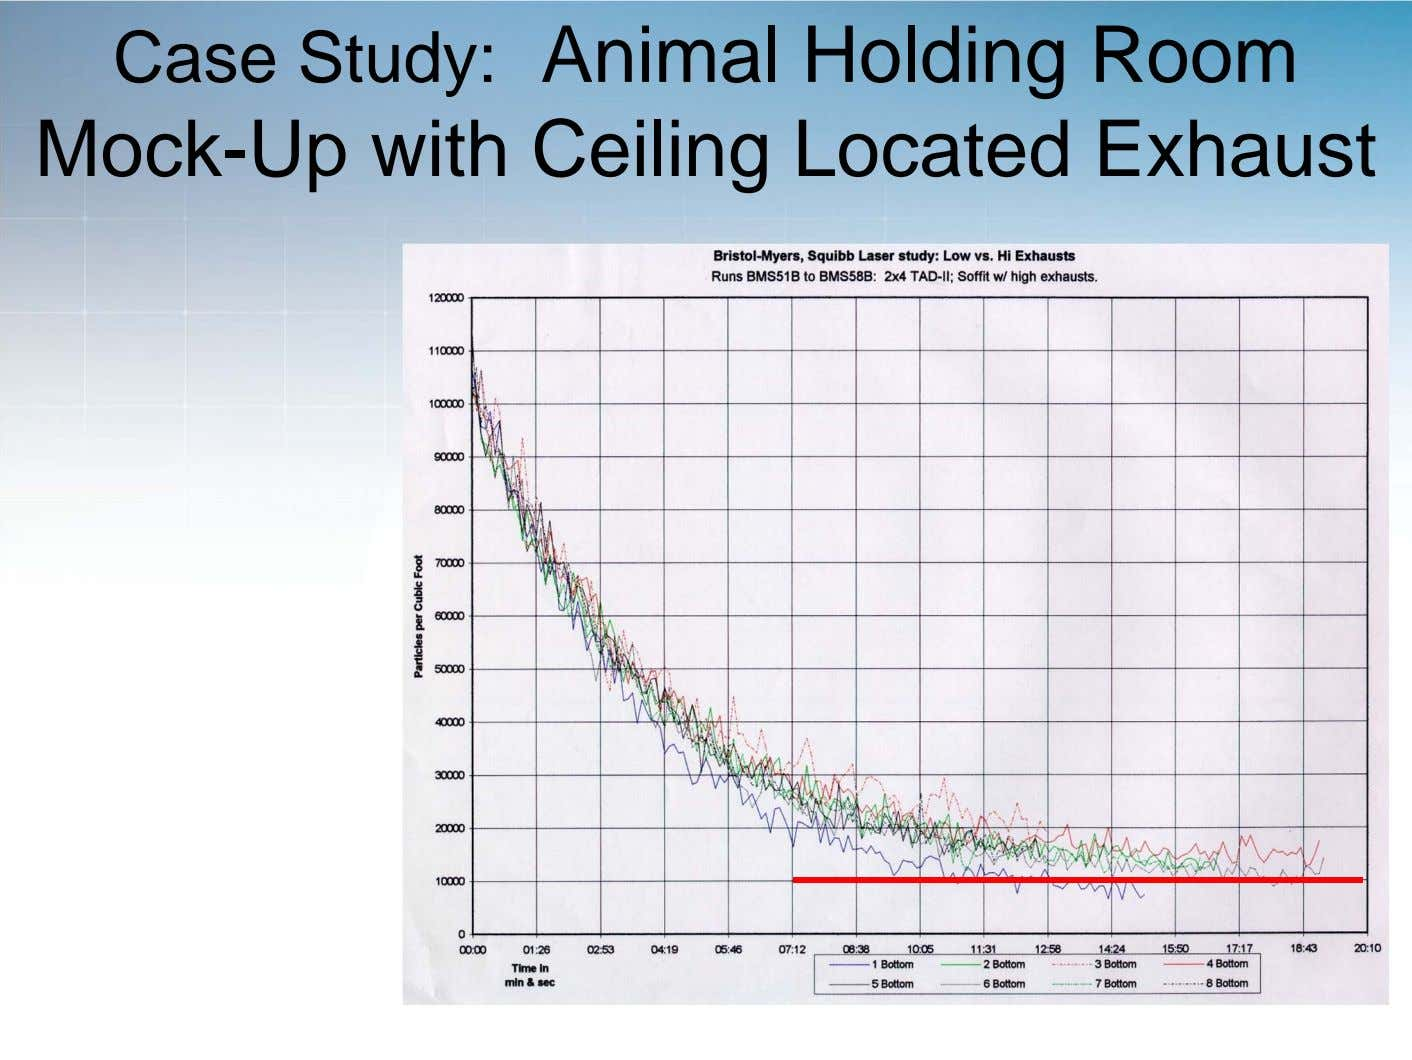 Case Study: Animal Holding Room Mock-Up with Ceiling Located Exhaust